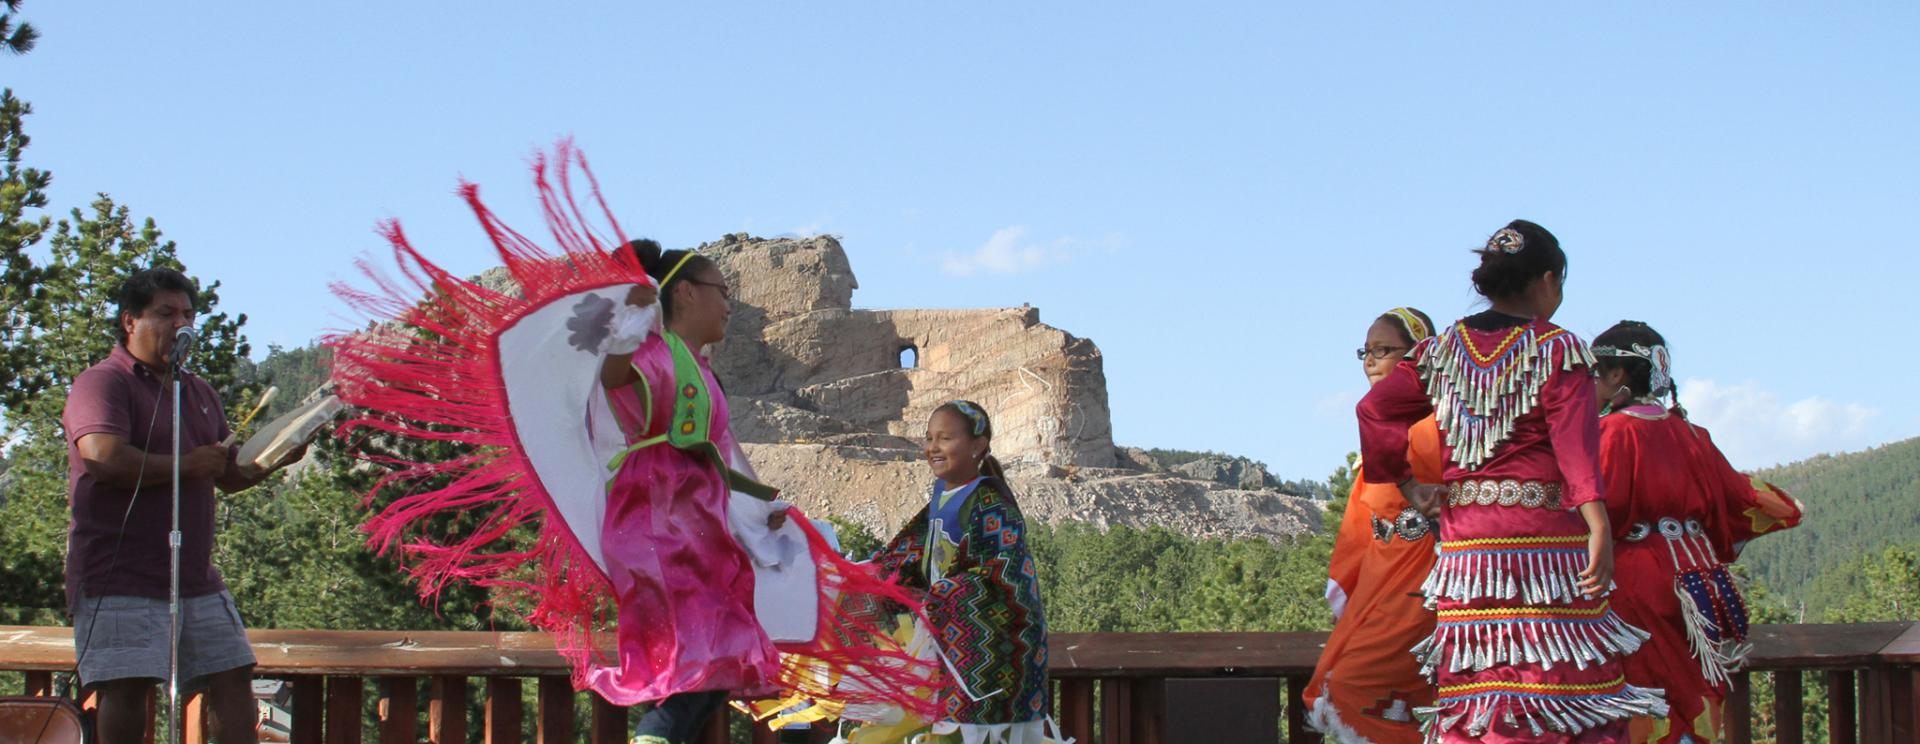 Native American Day | Crazy Horse Memorial